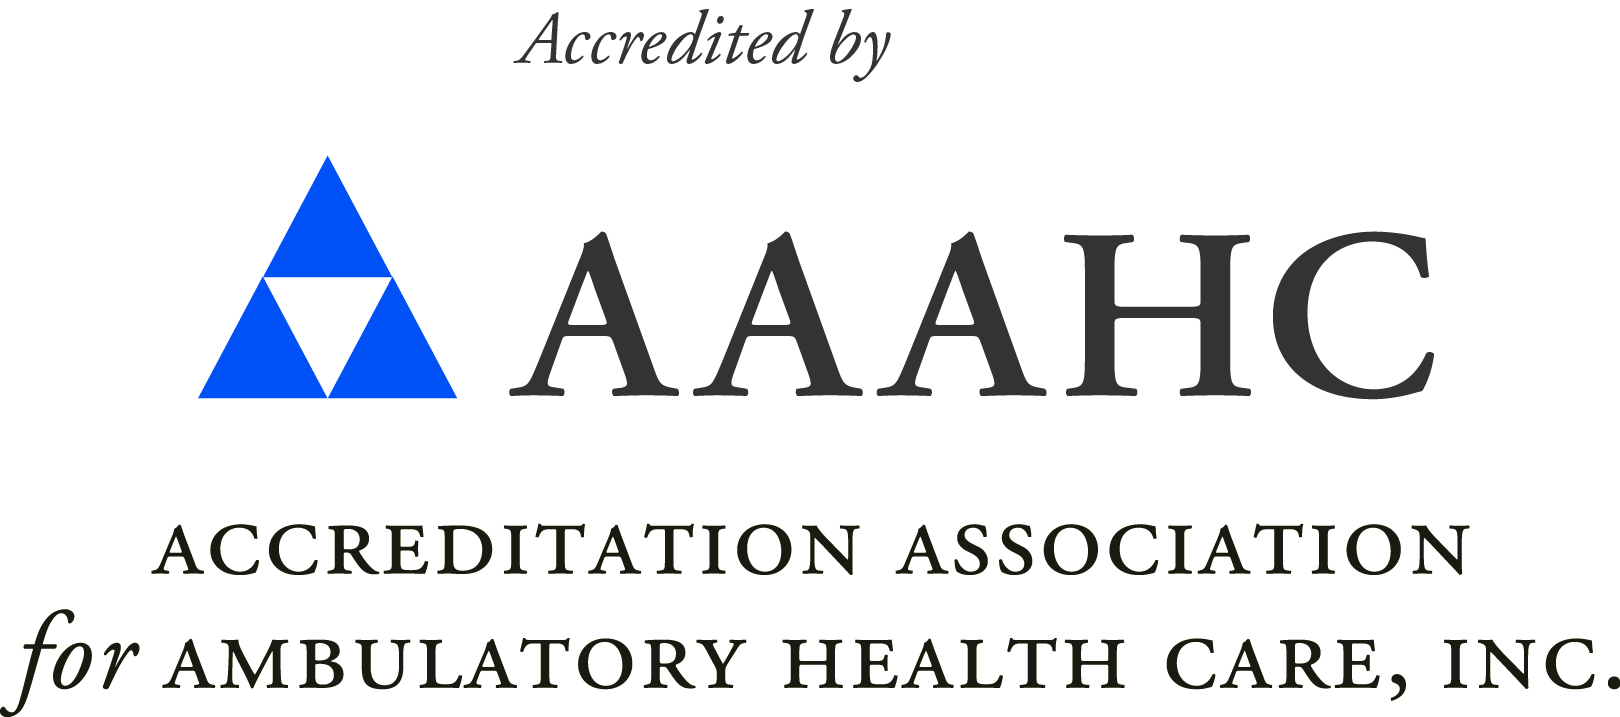 AAAHC Logo Acronym and Longform Color